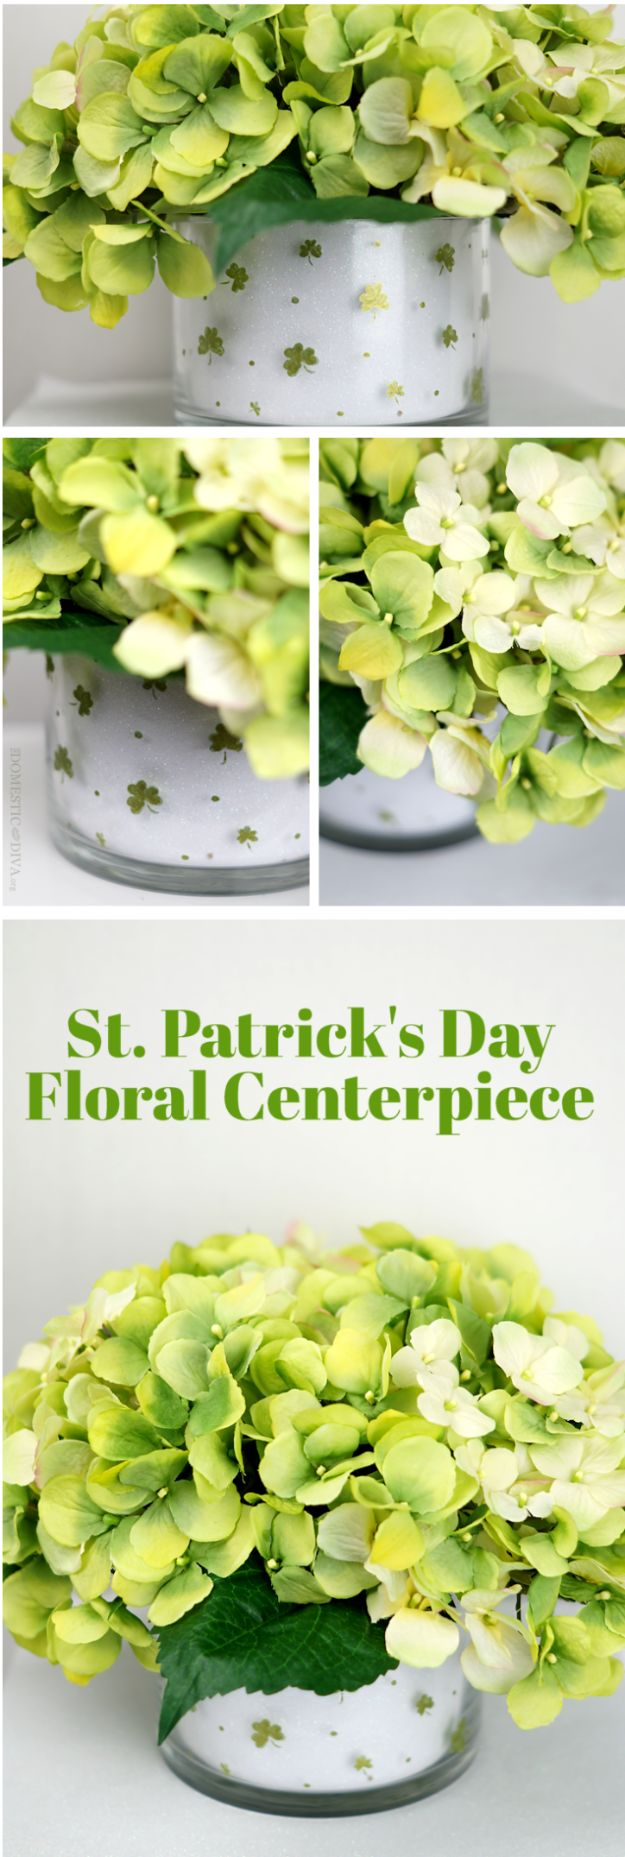 St Patricks Day Decor Ideas - DIY Shamrock Floral Arrangement Centerpiece - DIY St. Patrick's Day Party Decorations and Home Decor Crafts - Projects for Walls, Hanging Banners, Wreaths, Tabletop Centerpieces and Party Favors - Green Shamrocks, Leprechauns and Cute and Easy Do It Yourself Decor For Parties - Cheap Dollar Store Ideas for Those On A Budget http://diyjoy.com/diy-st-patricks-day-decor